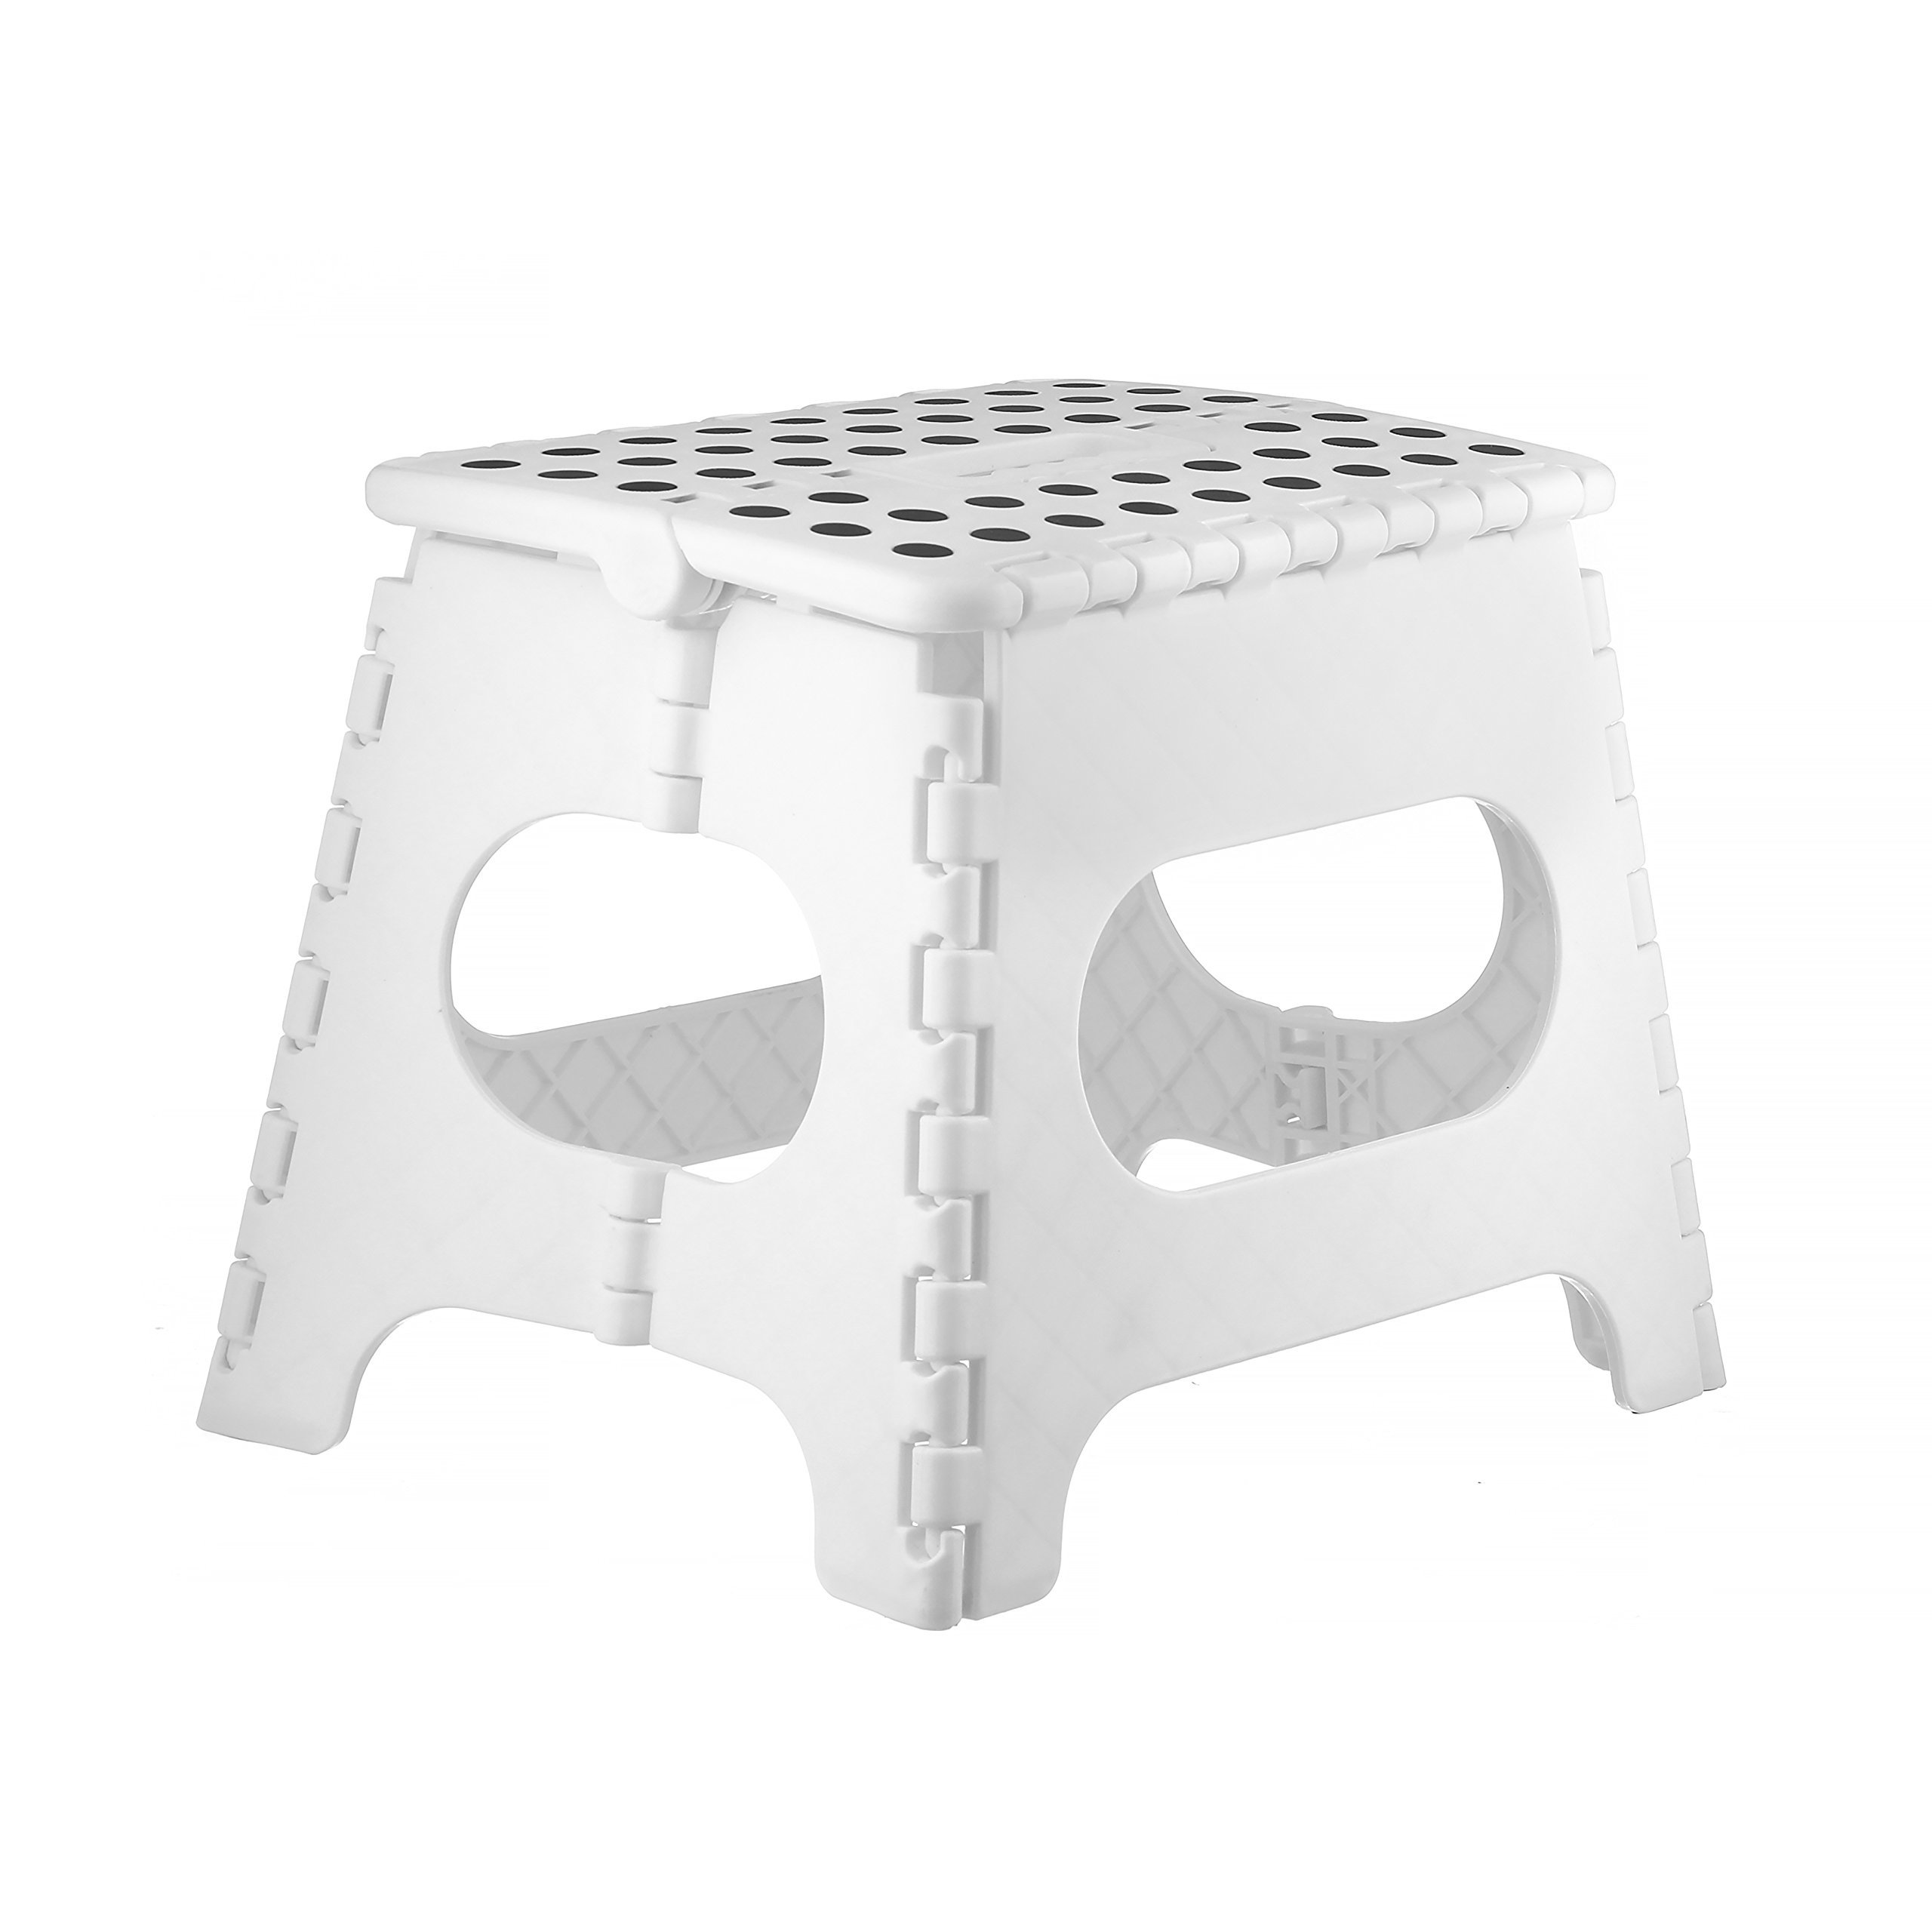 Home-it Step Stool Super Quality Folding Step Stool for Kids Step Stool 11 Inches. by Home-it